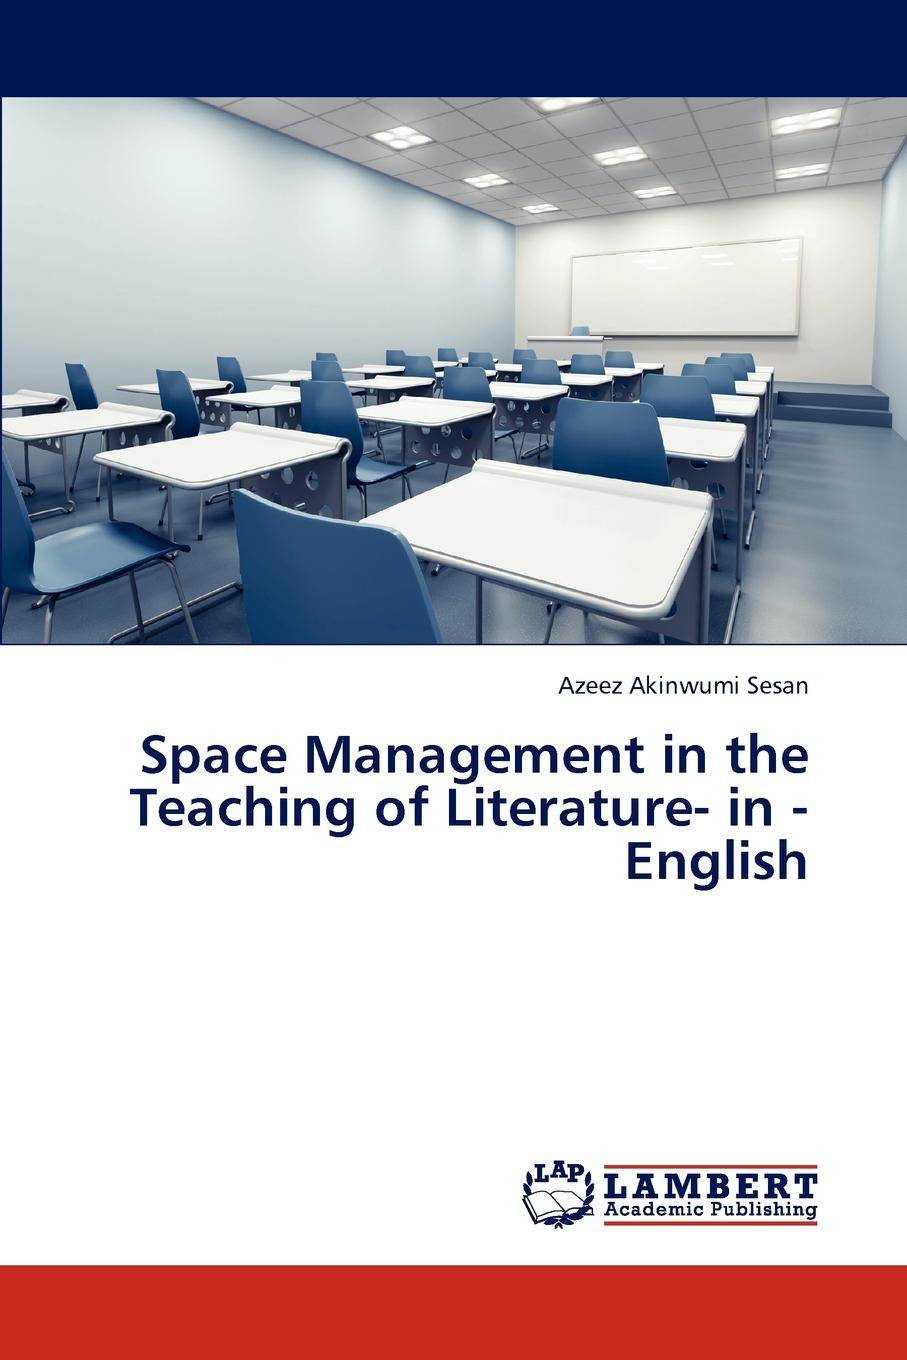 Space Management in the Teaching of Literature- In - English